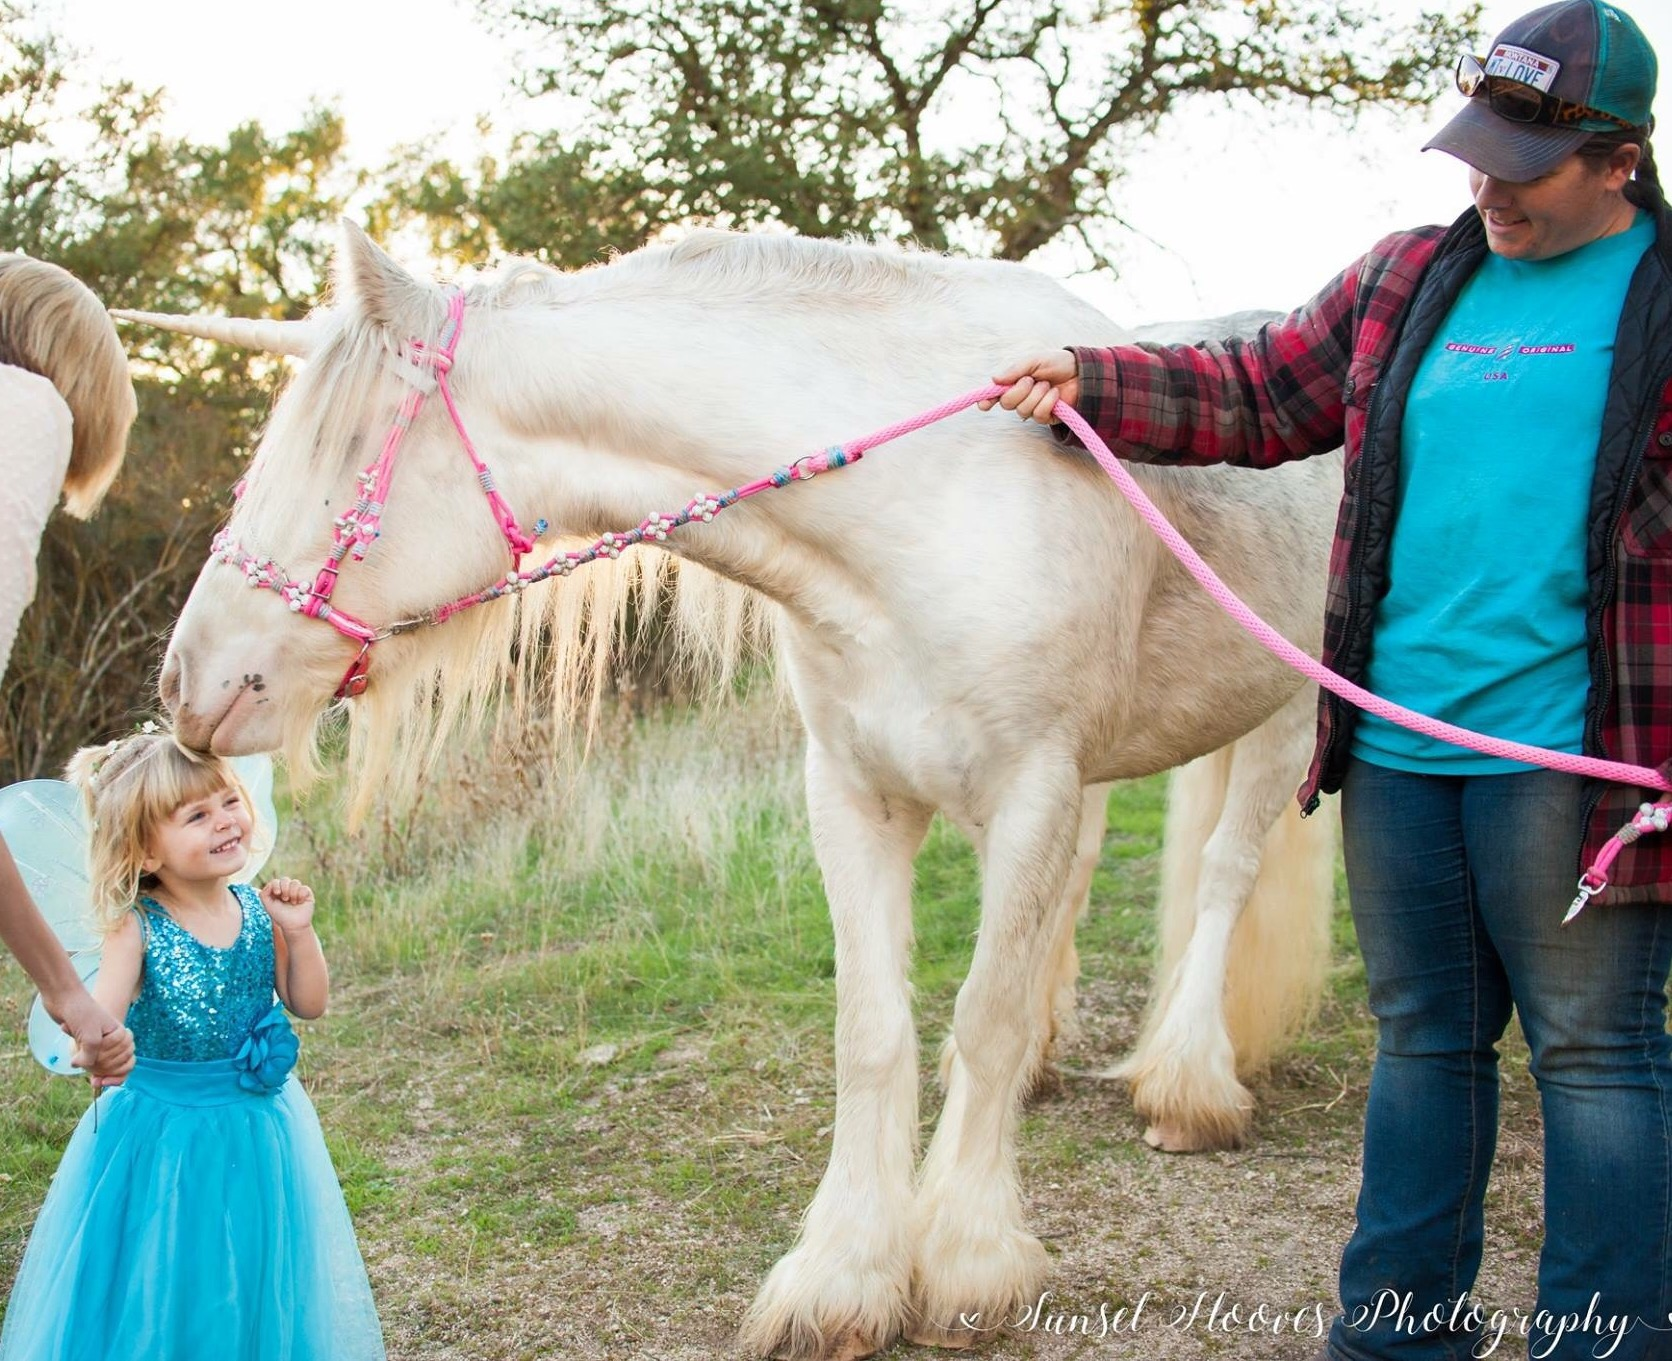 Magical unicorn nuzzles toddler dressed as a fairy princess in unicorn photoshoot in Creston, California.